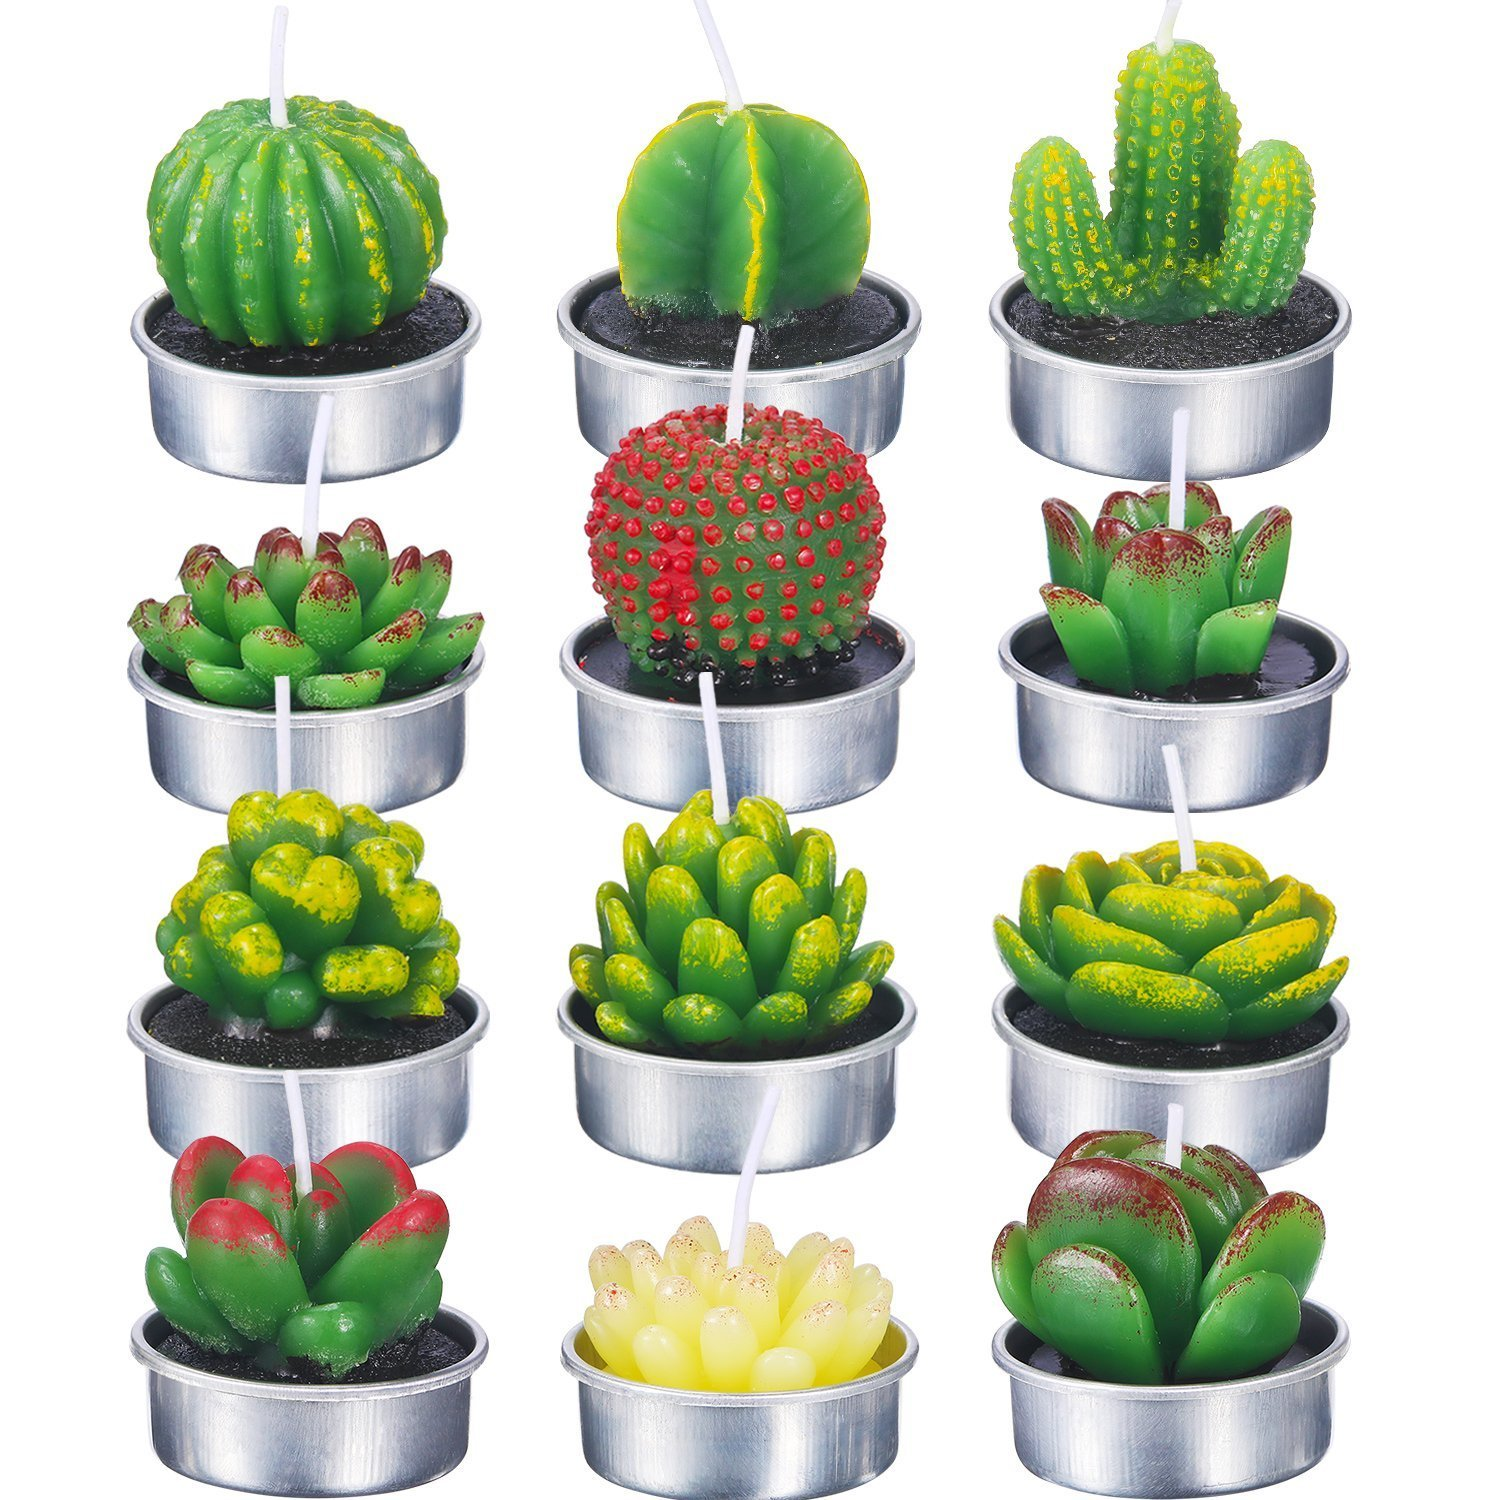 KisSealed 12 Pieces Succulent Cactus Candles Handmade Cactus Tealight Candles for Spa Home Party Wedding Decoration Gifts-2 ONE-2